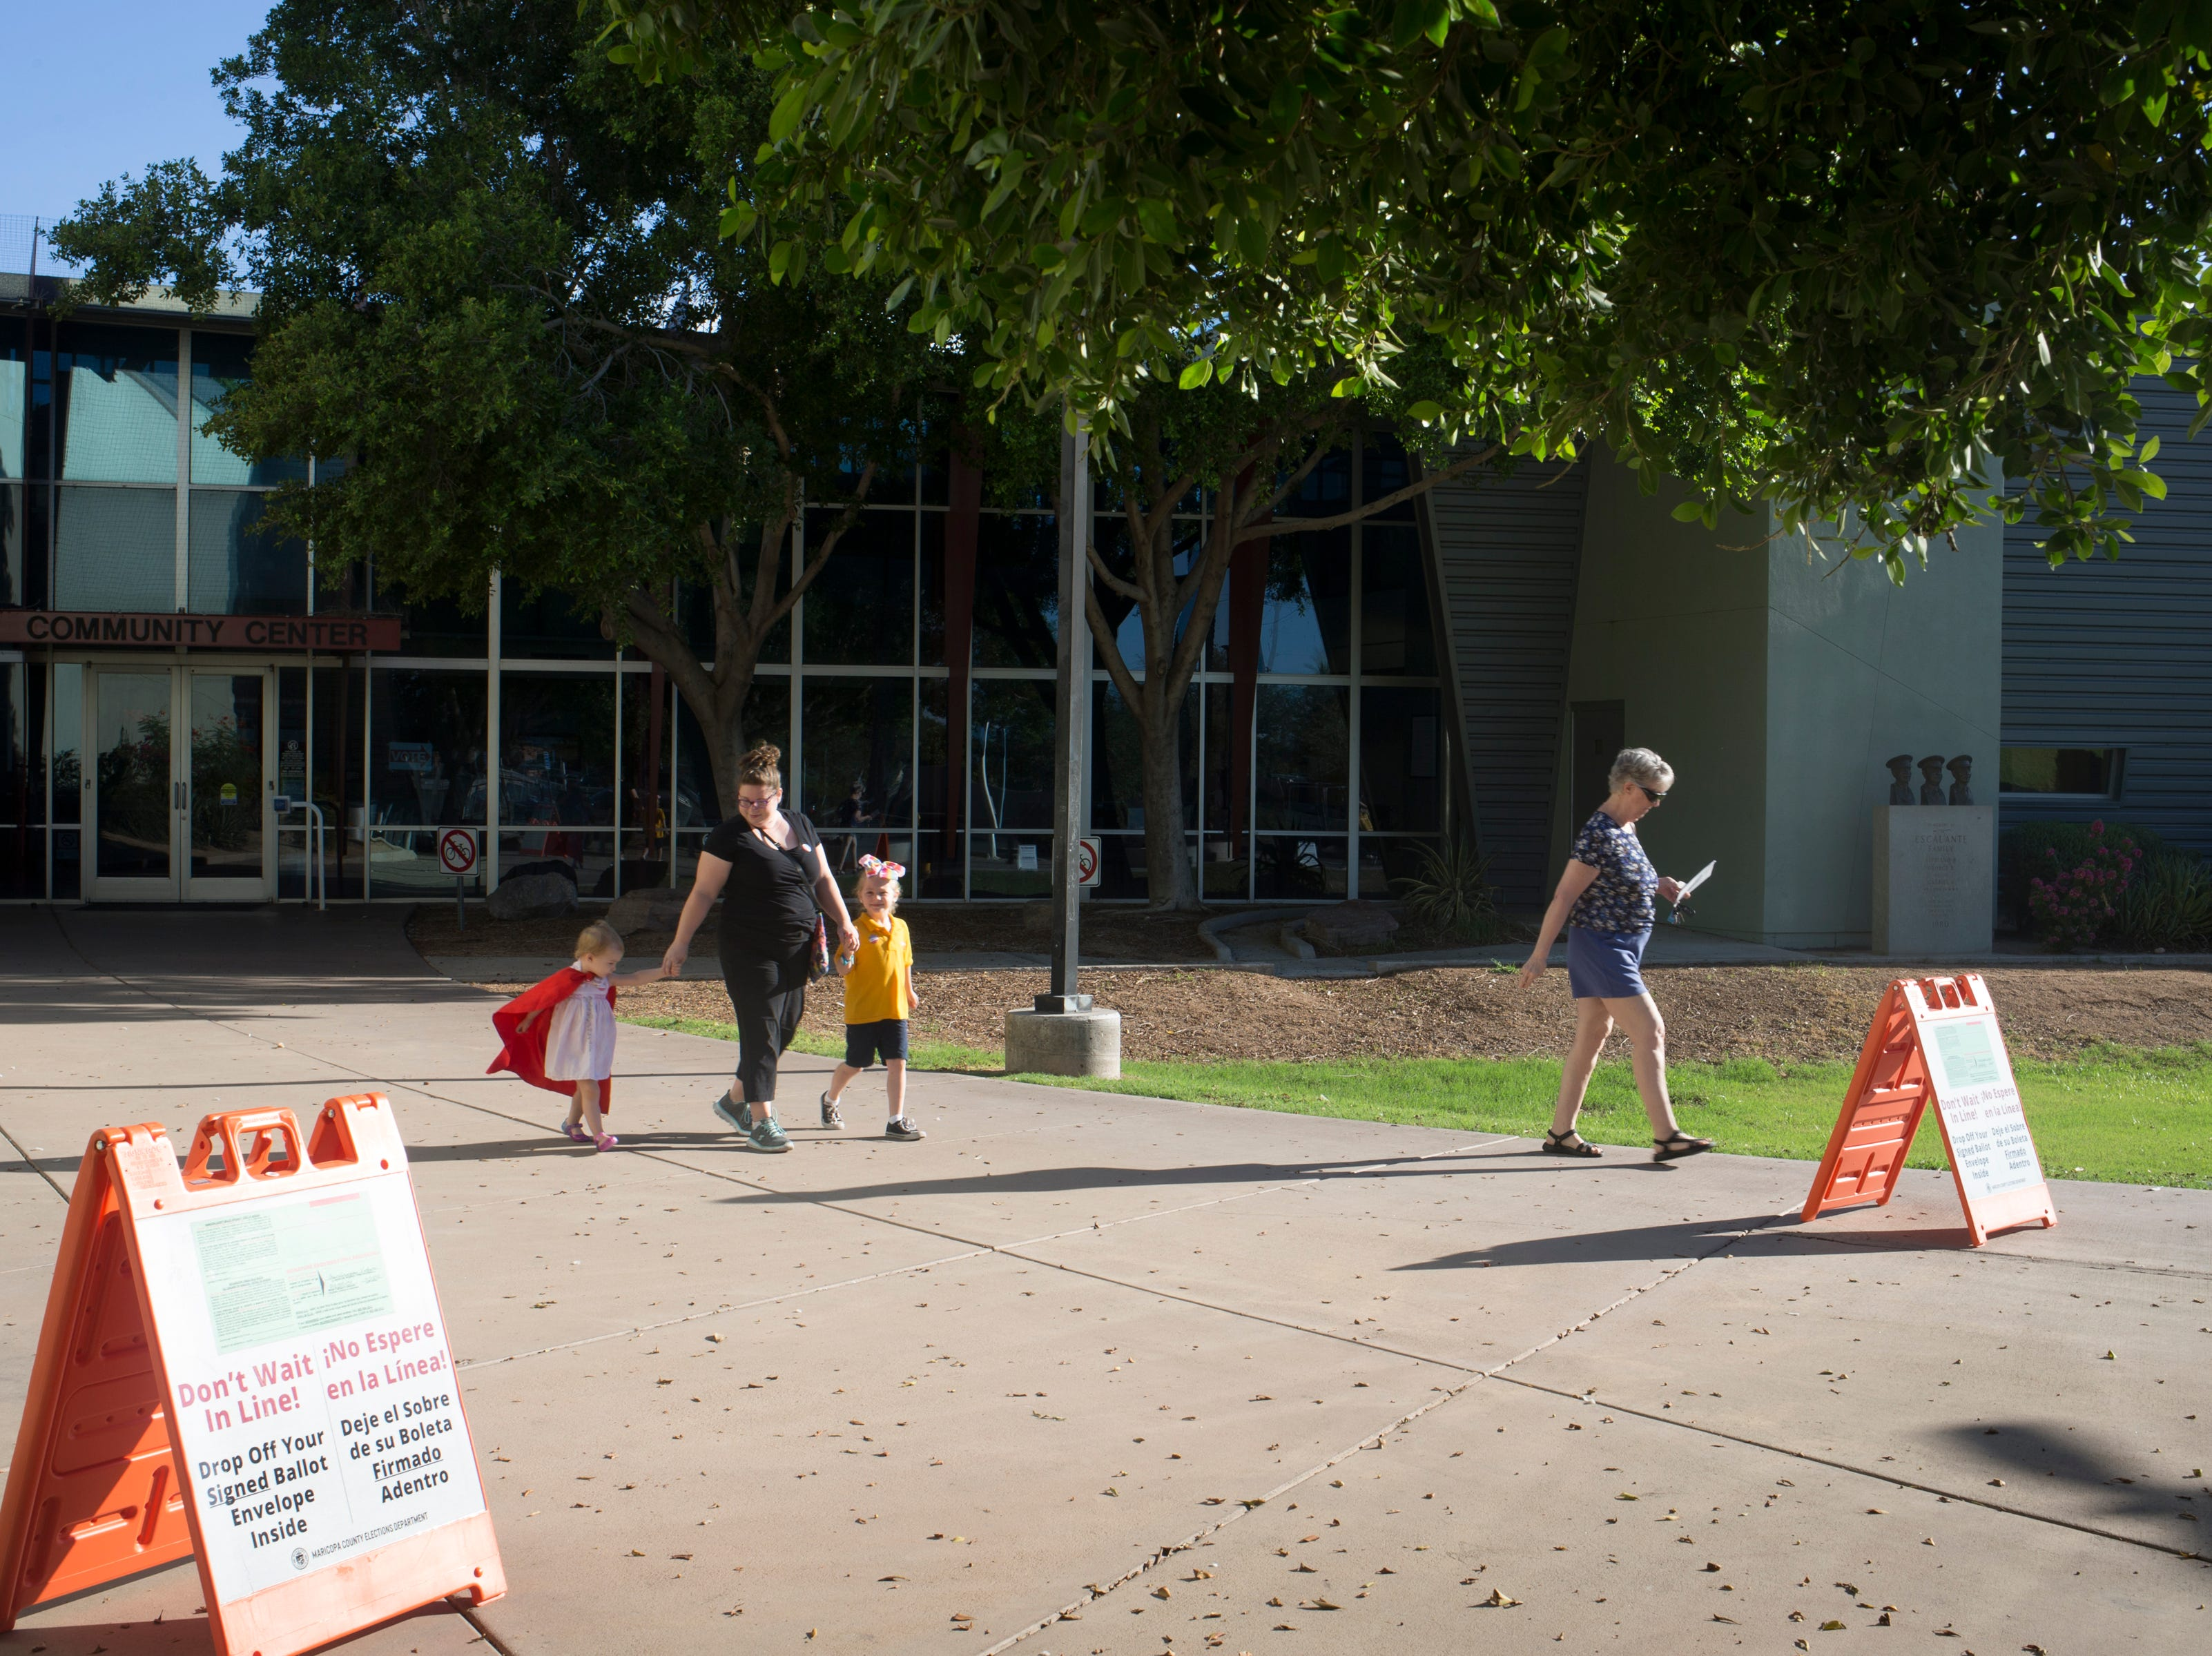 Voters leave at the polling place after voting, Aug. 28, 2018, at the Escalante Community Center, 2150 E. Orange Street in Tempe.